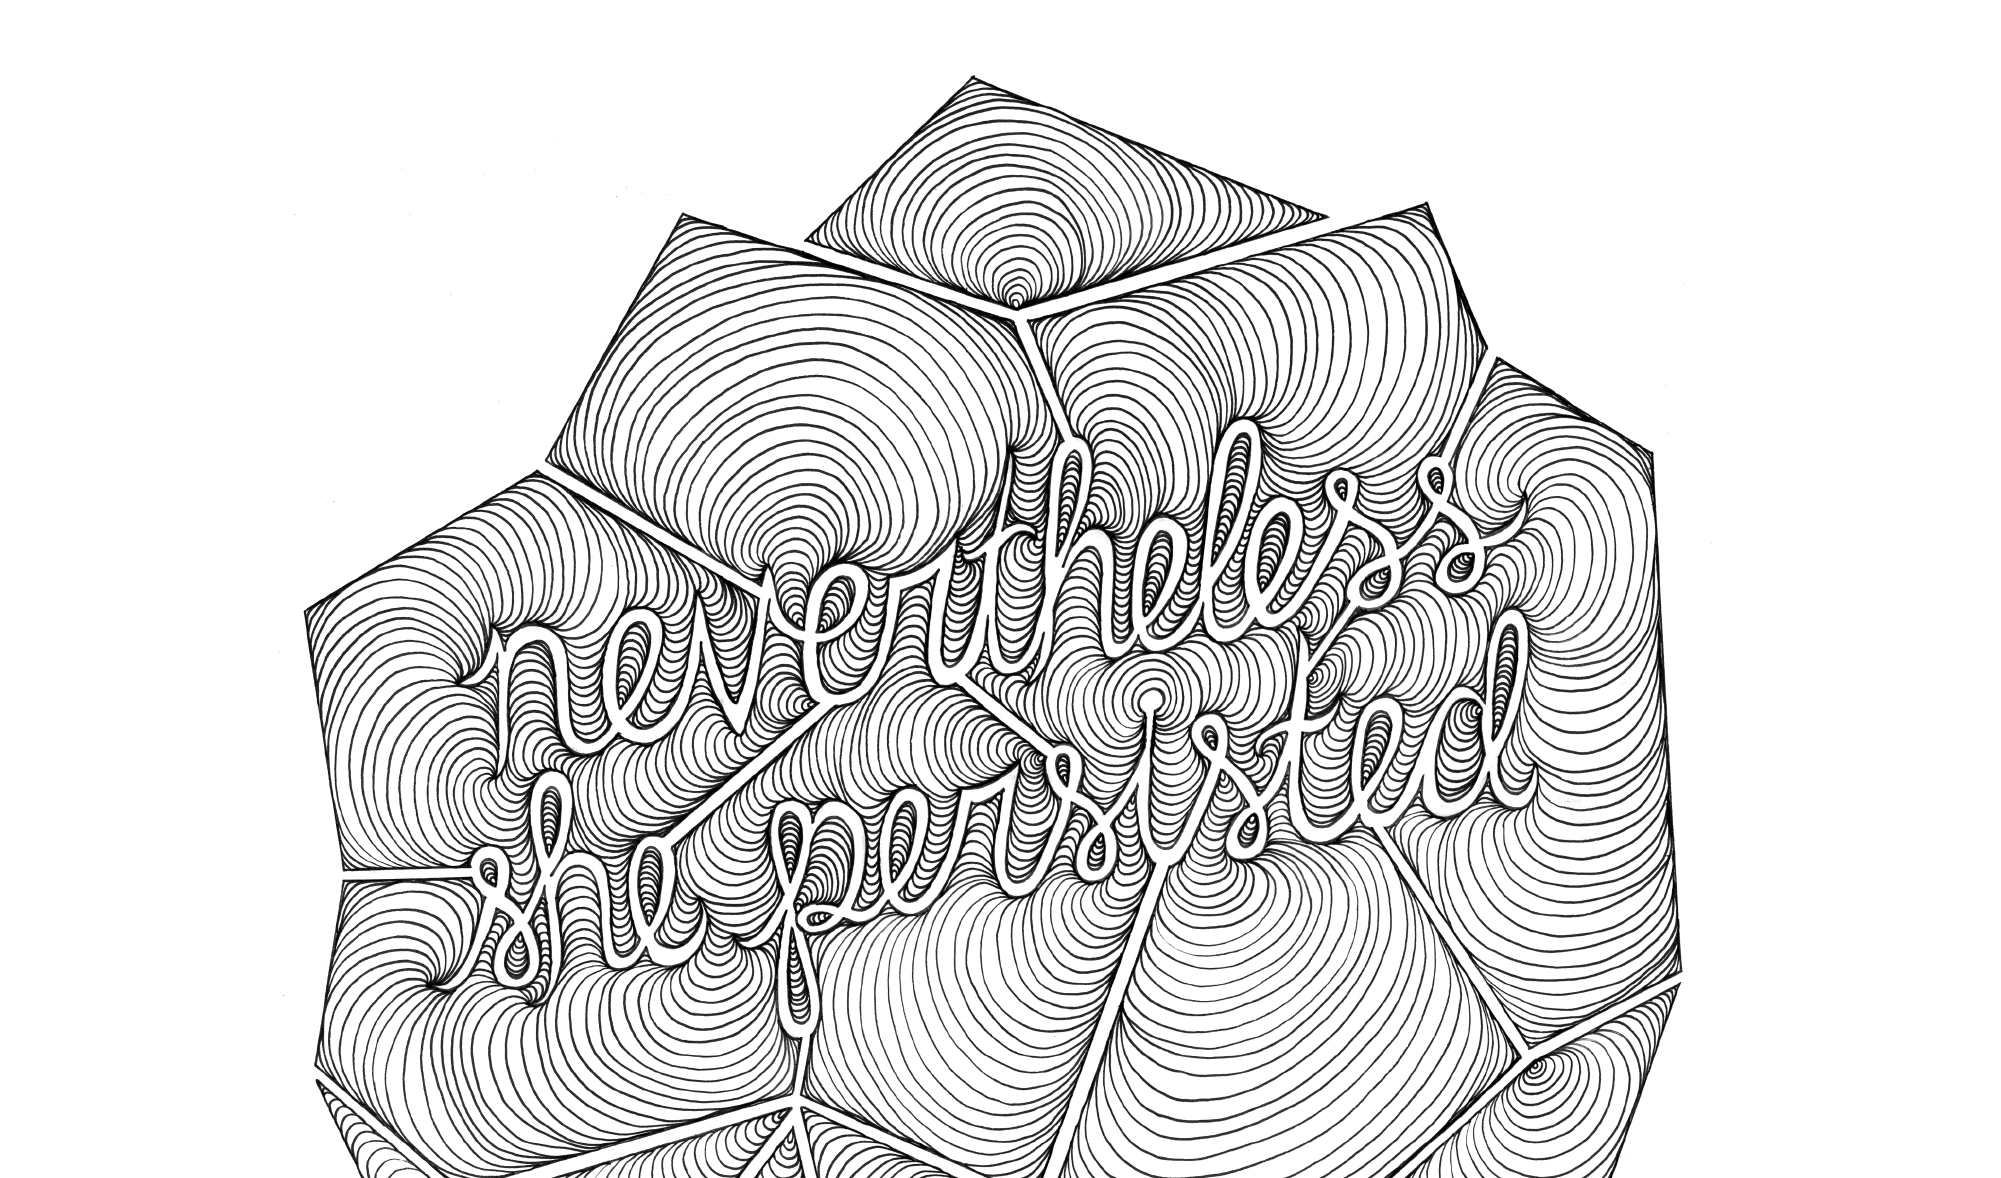 Apparel - Nevertheless She Persisted